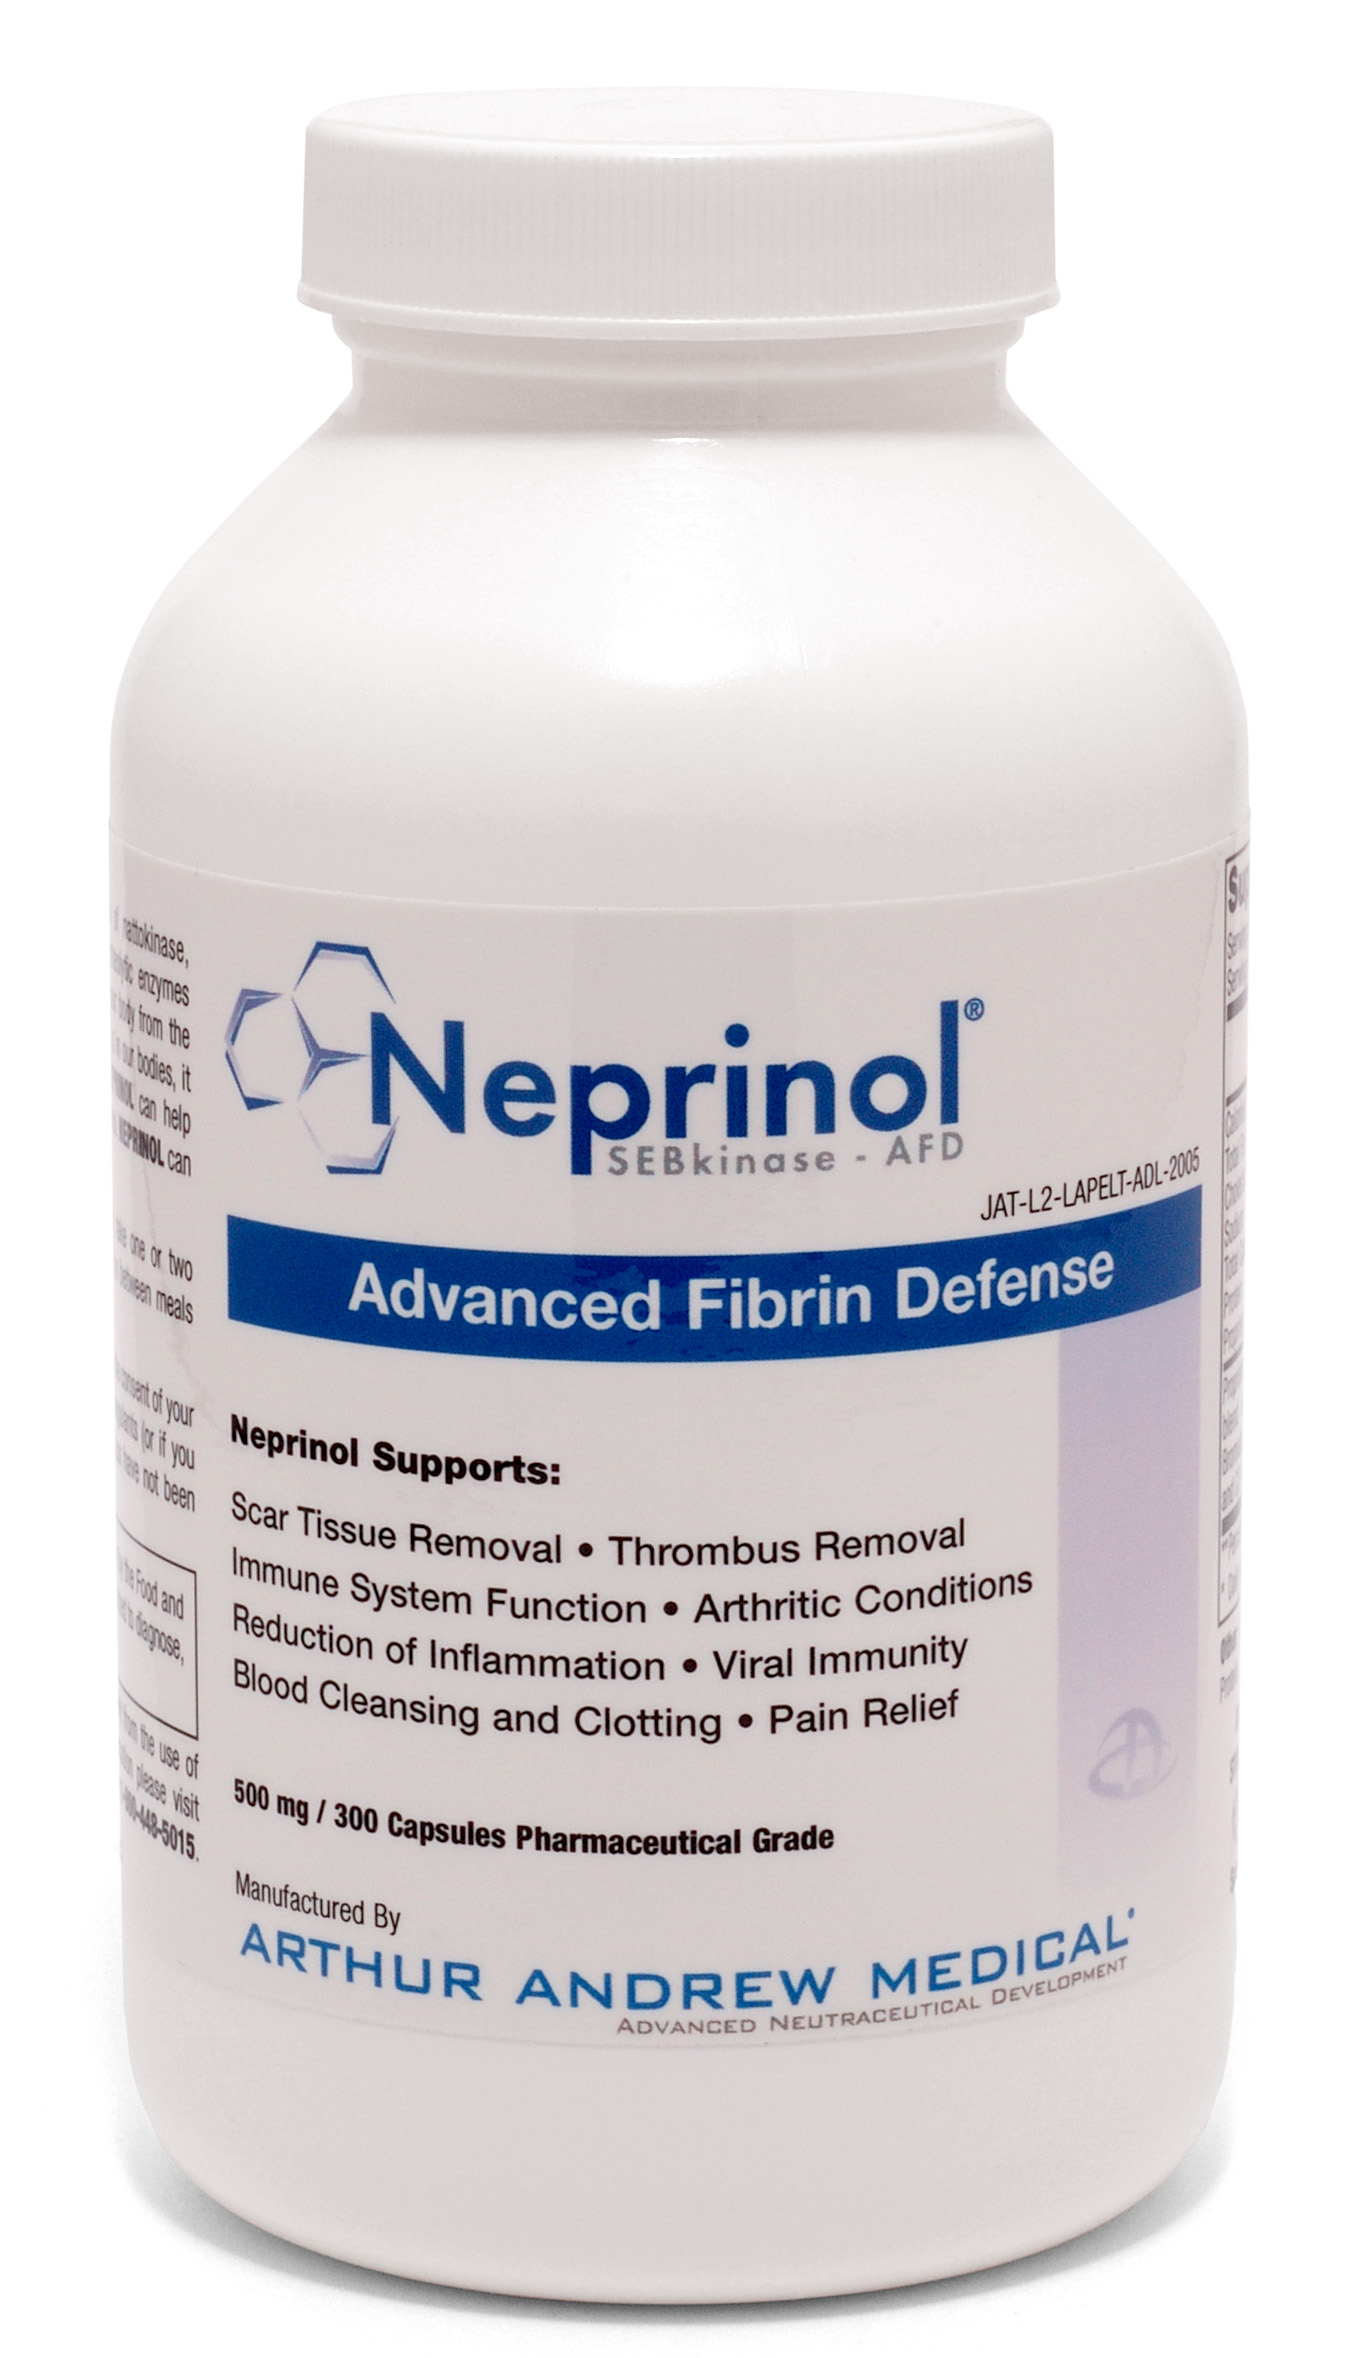 Dupuytrens contracture sufferers like Neprinol because it combines all the best of the systemic enzymes in one convenient product, removing and eliminating excess fibrous tissue wherever it is found in the body